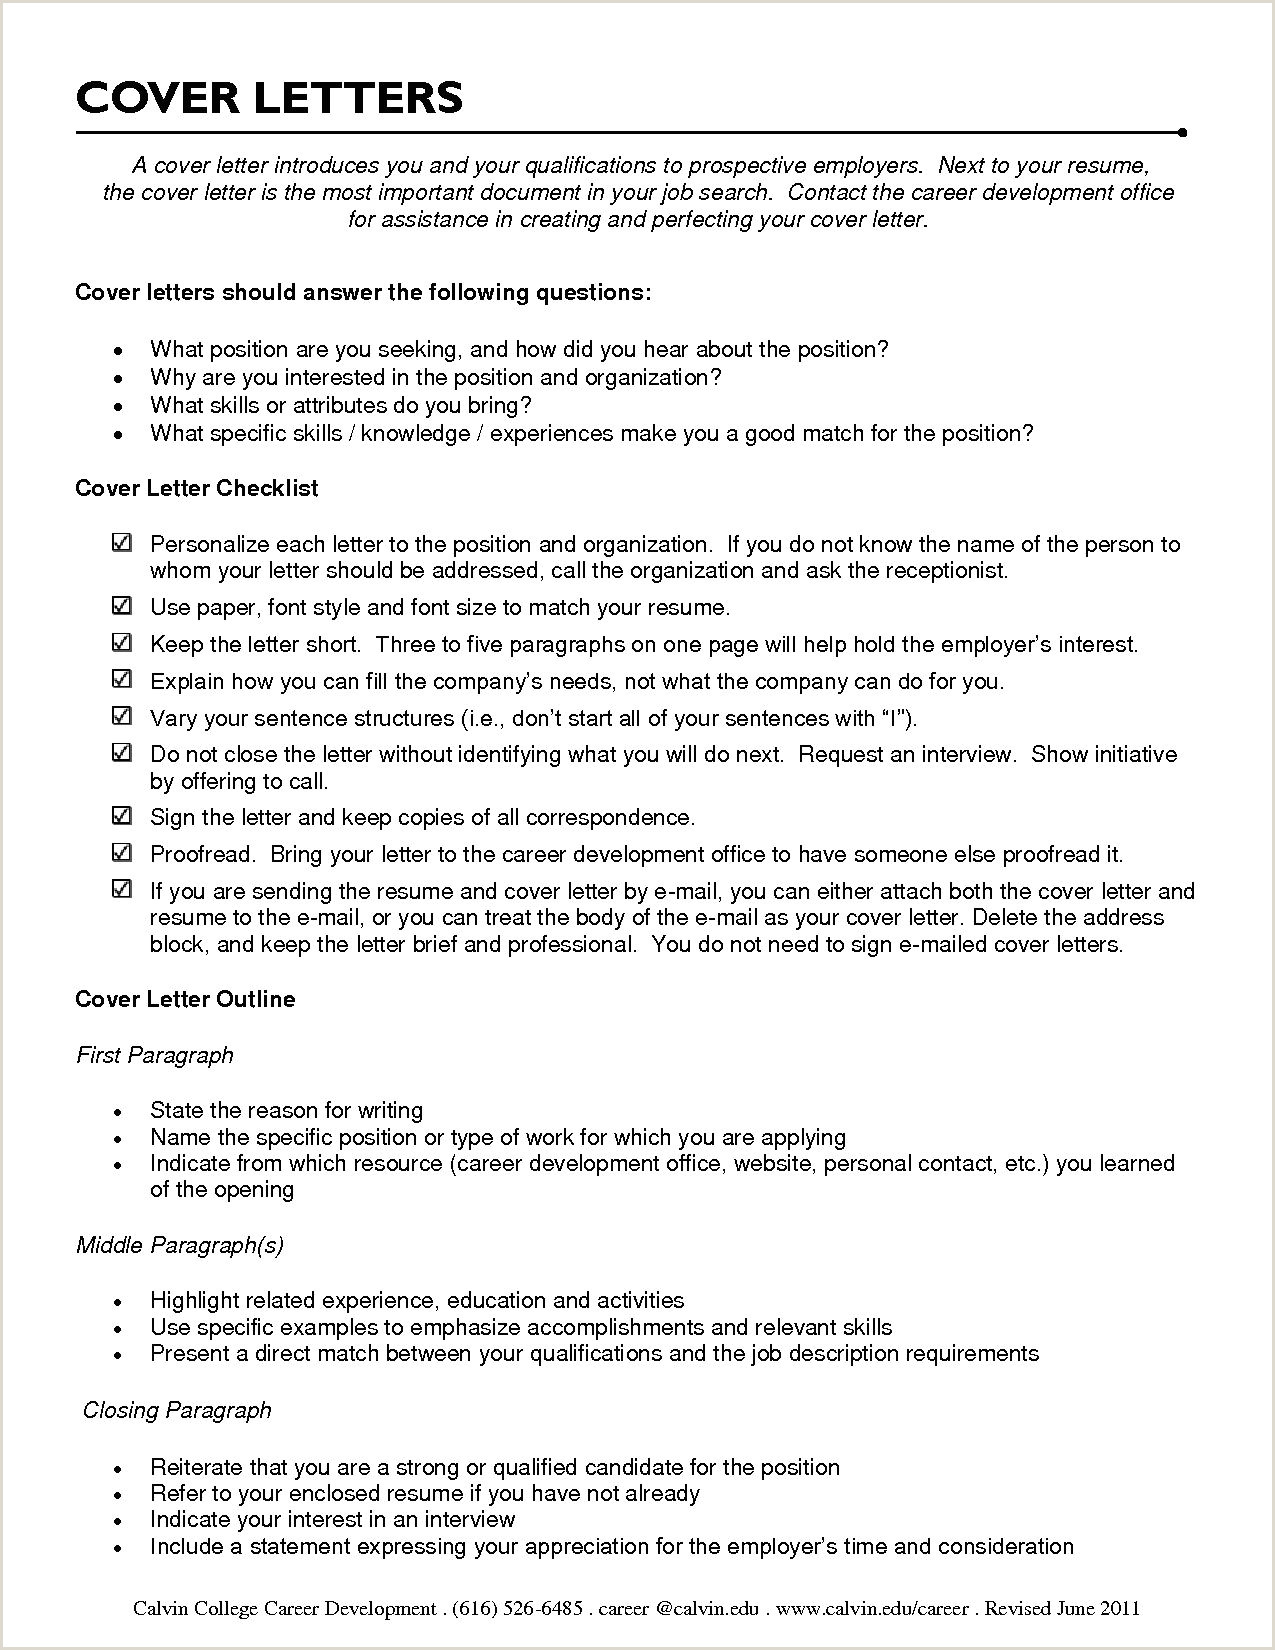 resume mental health counselor cover letter word sample high